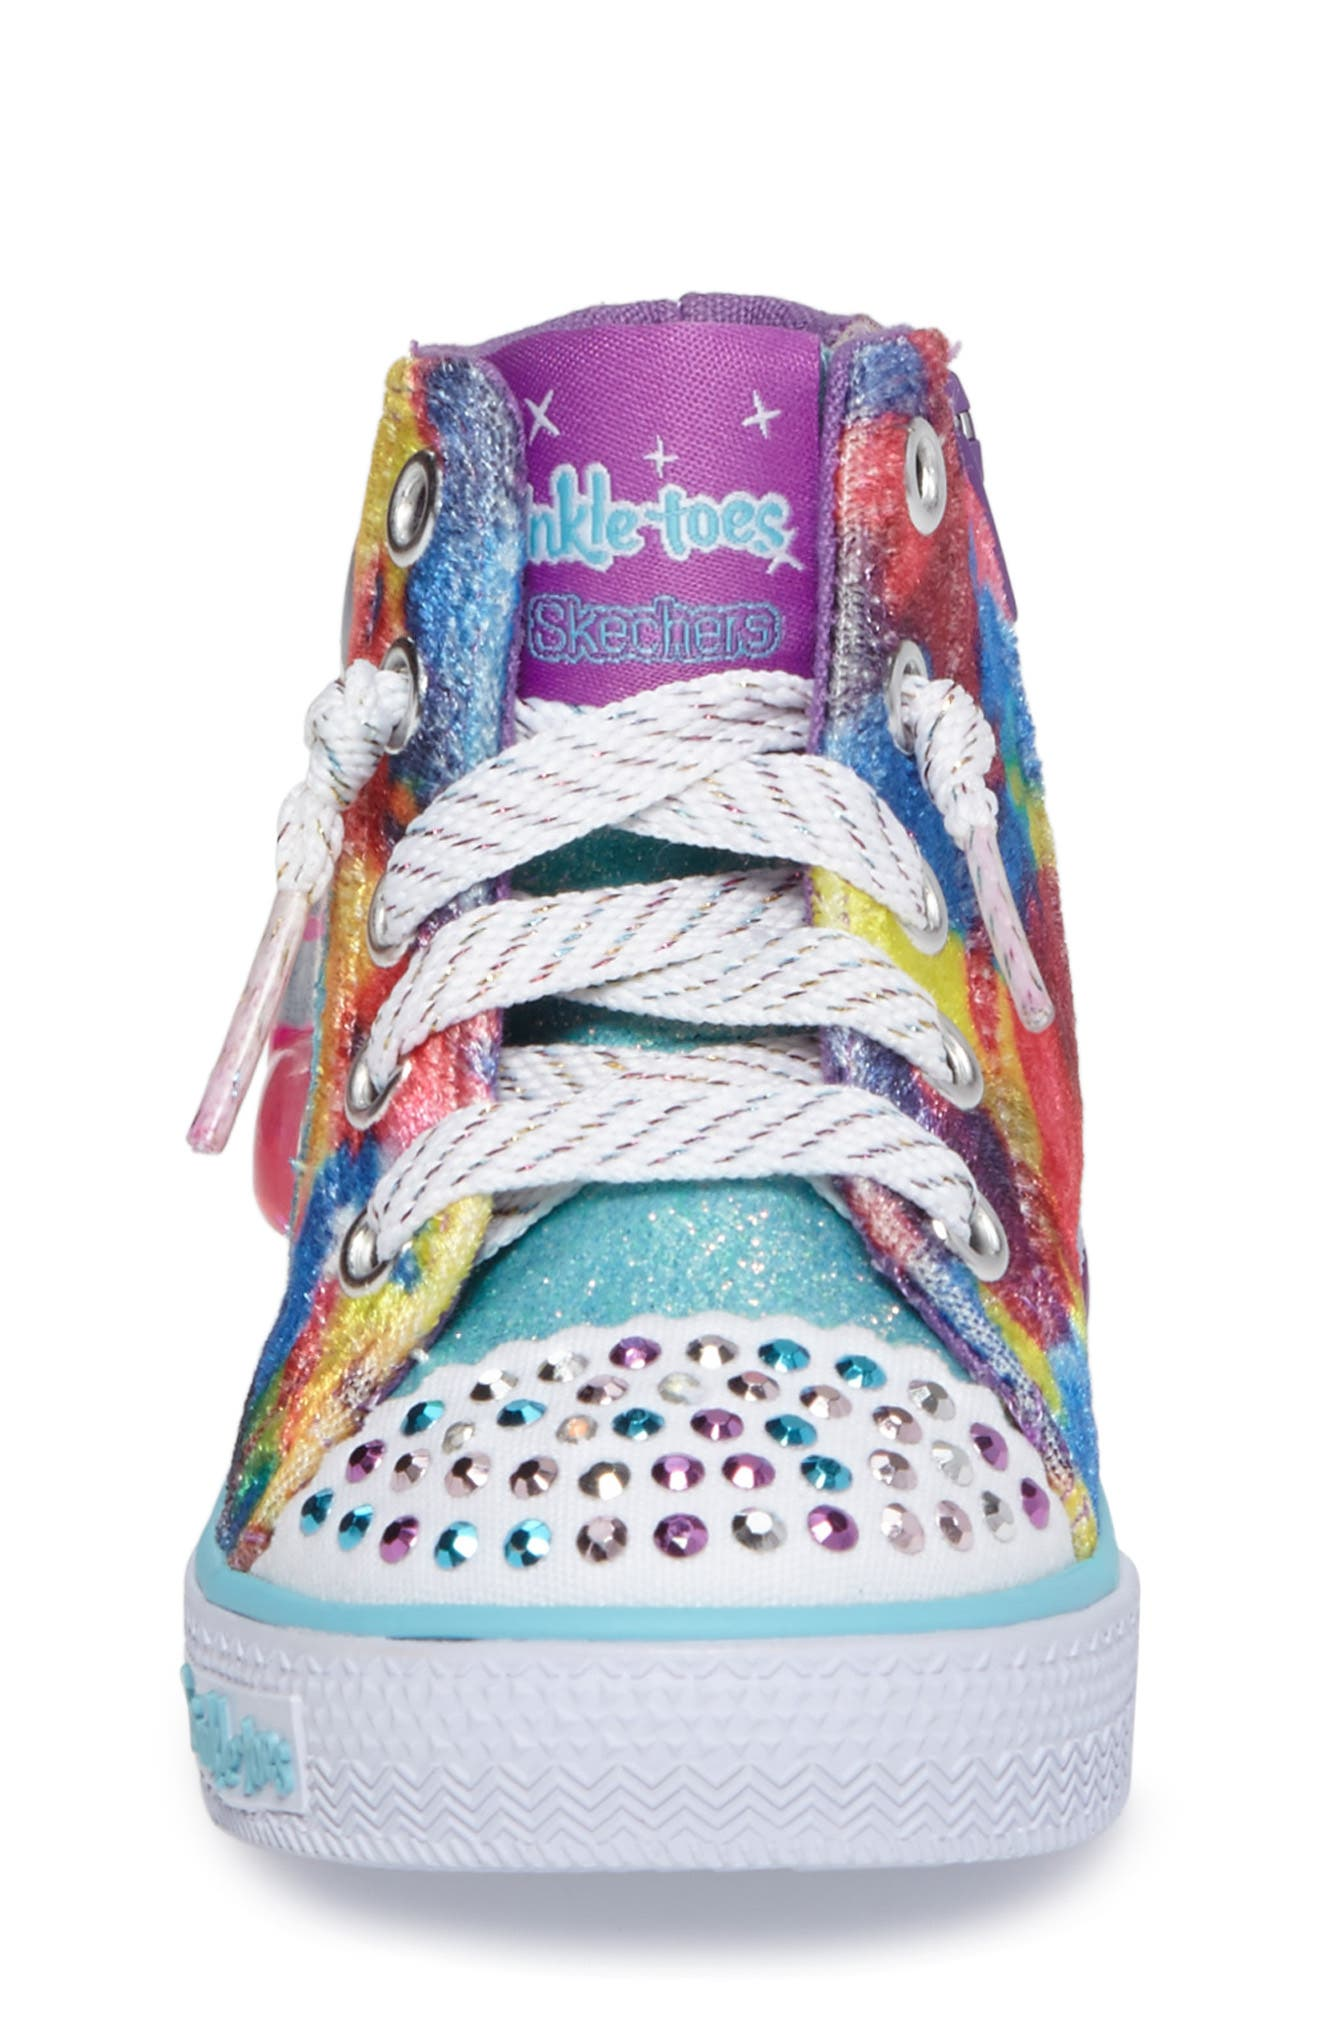 Twinkle Toes Shuffles Light-Up High Top Sneaker,                             Alternate thumbnail 4, color,                             650